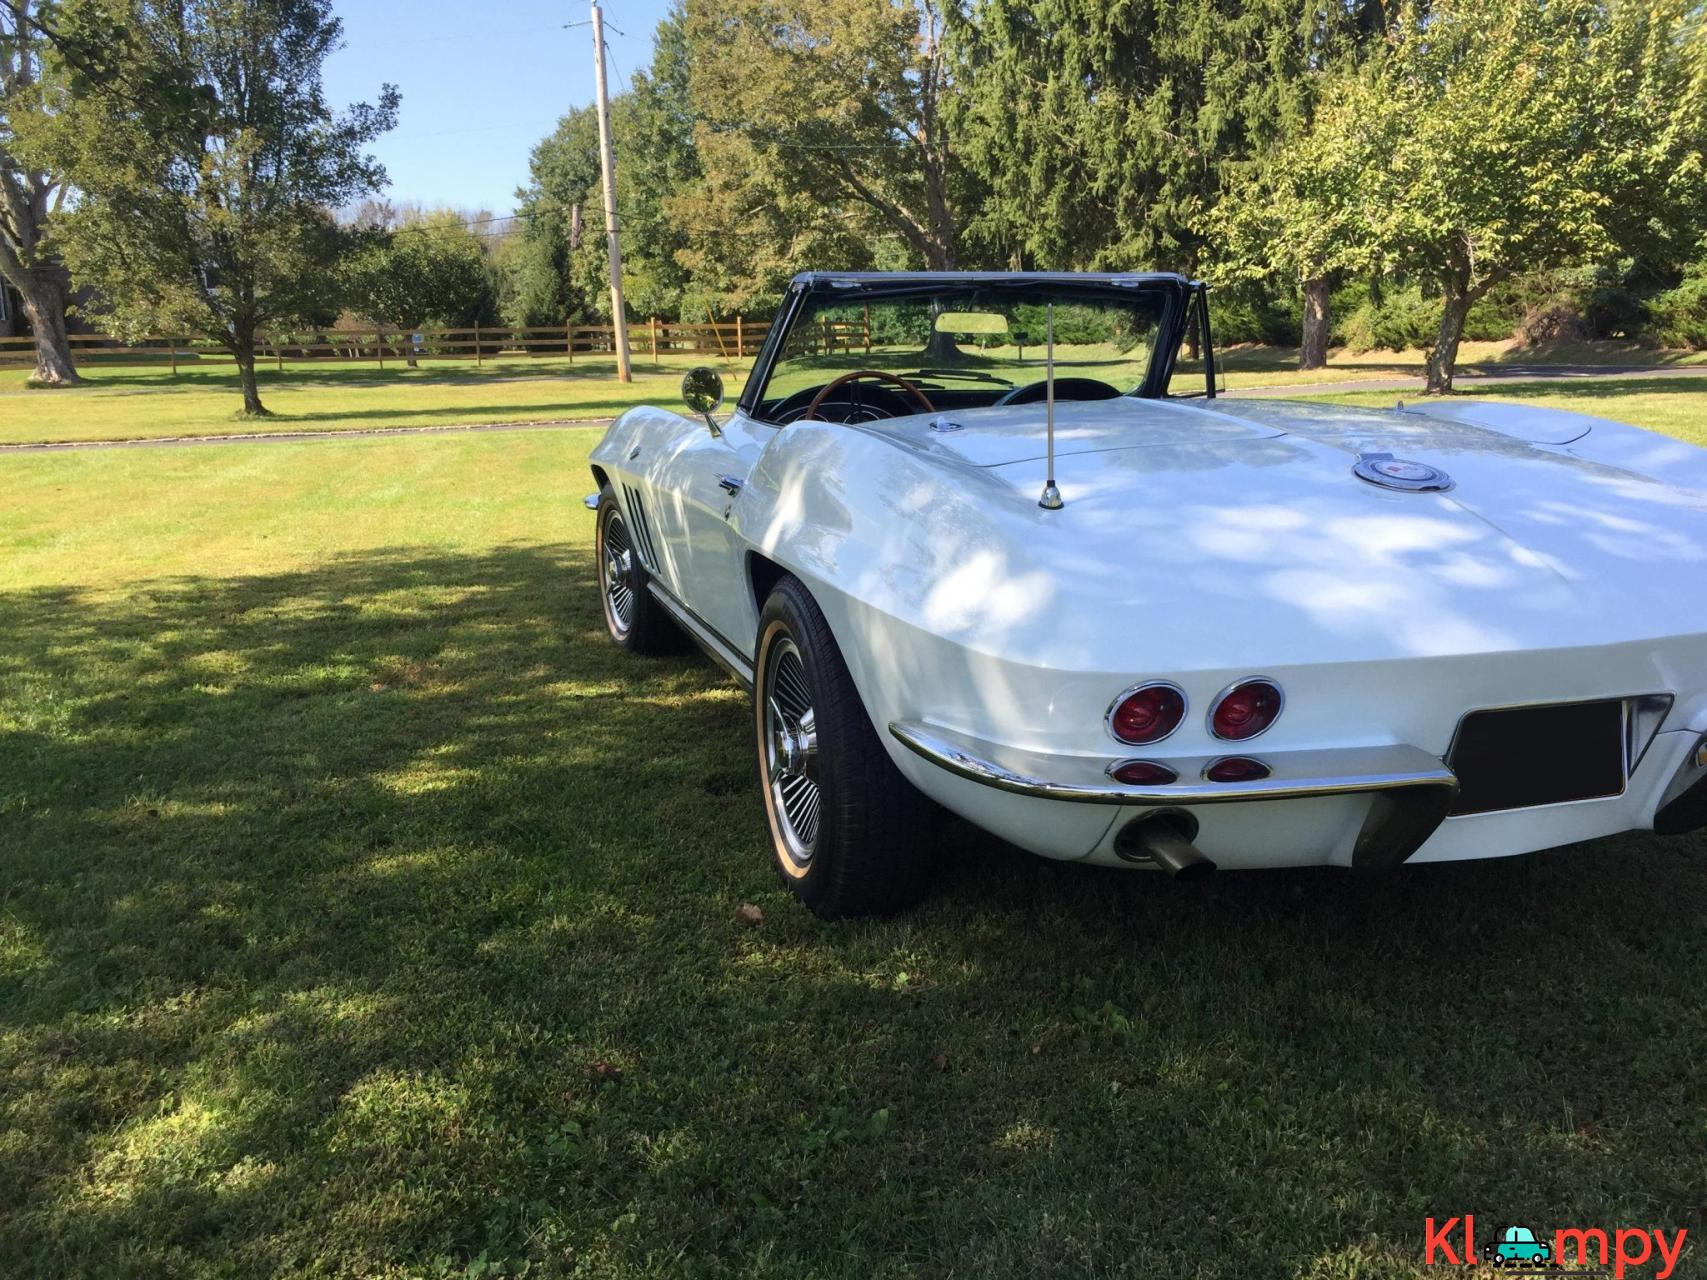 1965 Chevrolet Corvette 327 Convertible V8 - 6/20